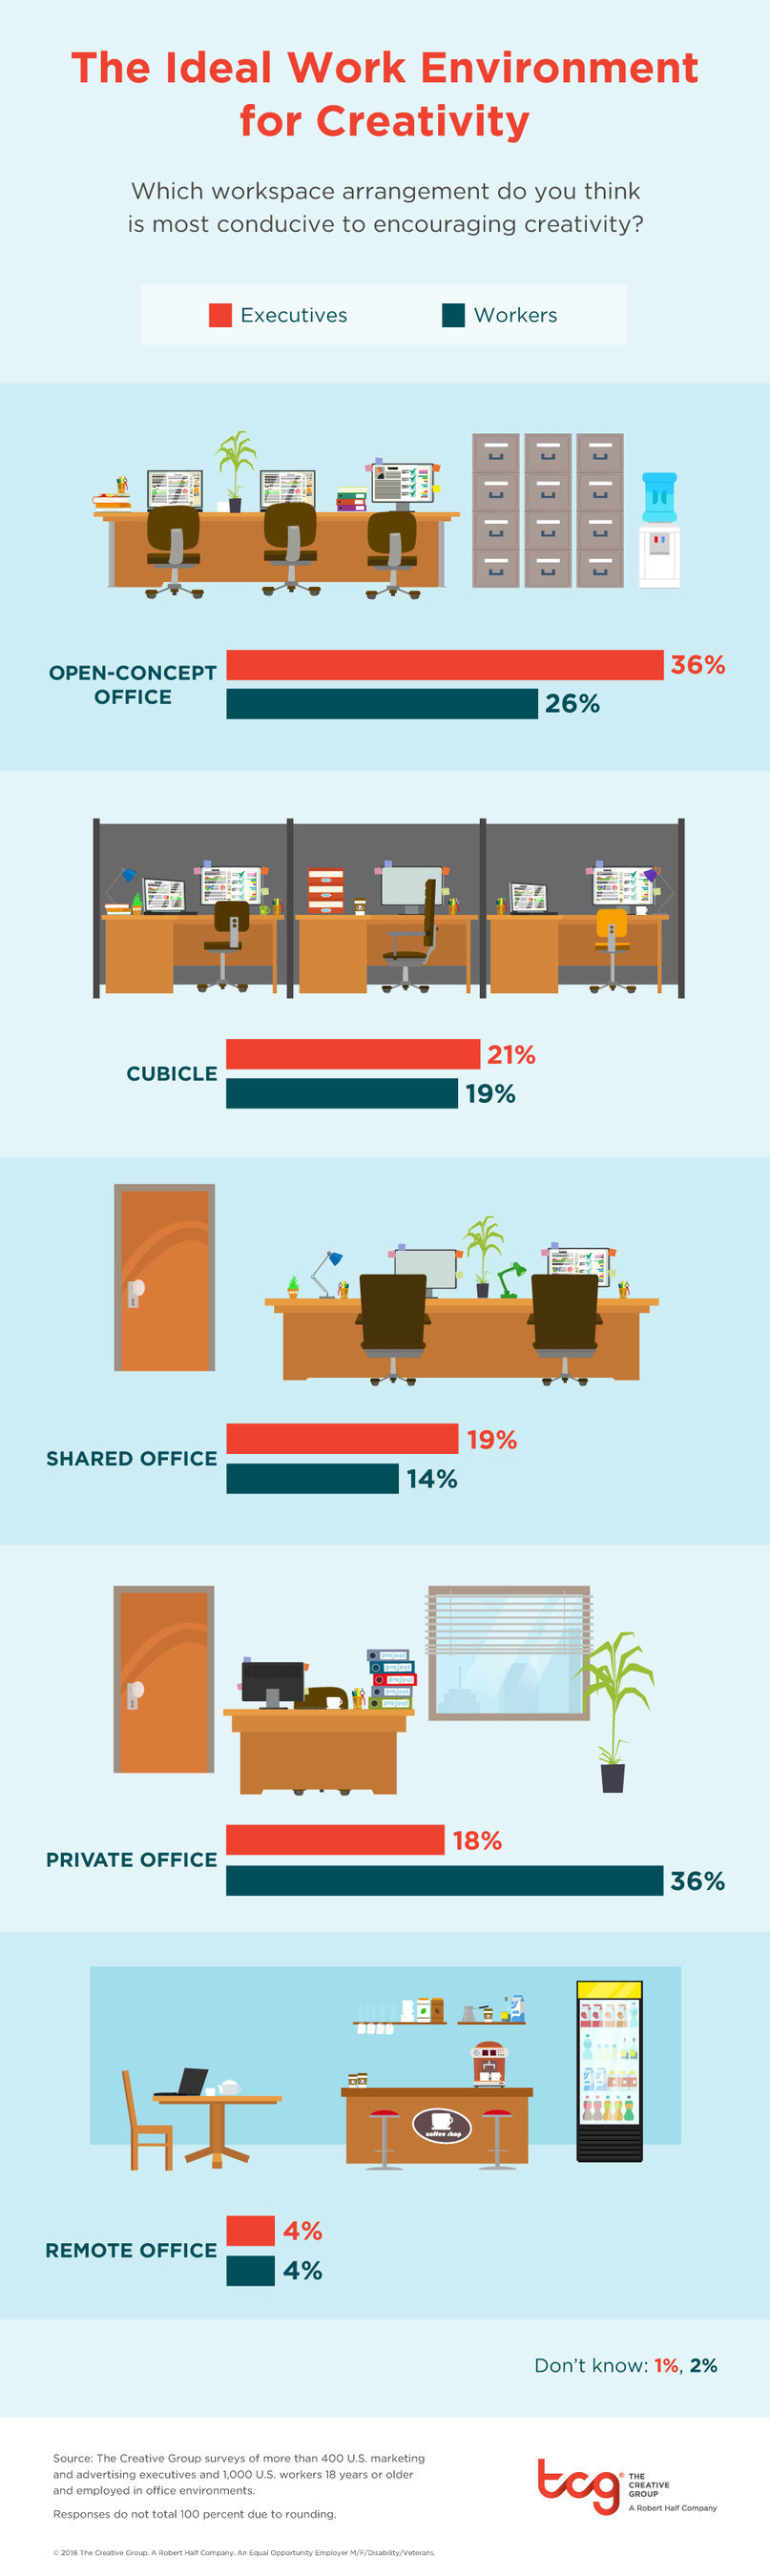 office space where creativity thrives creative execs and workers the surveys were developed by the creative group and conducted by an independent research firm they include responses from more than 400 u s advertising